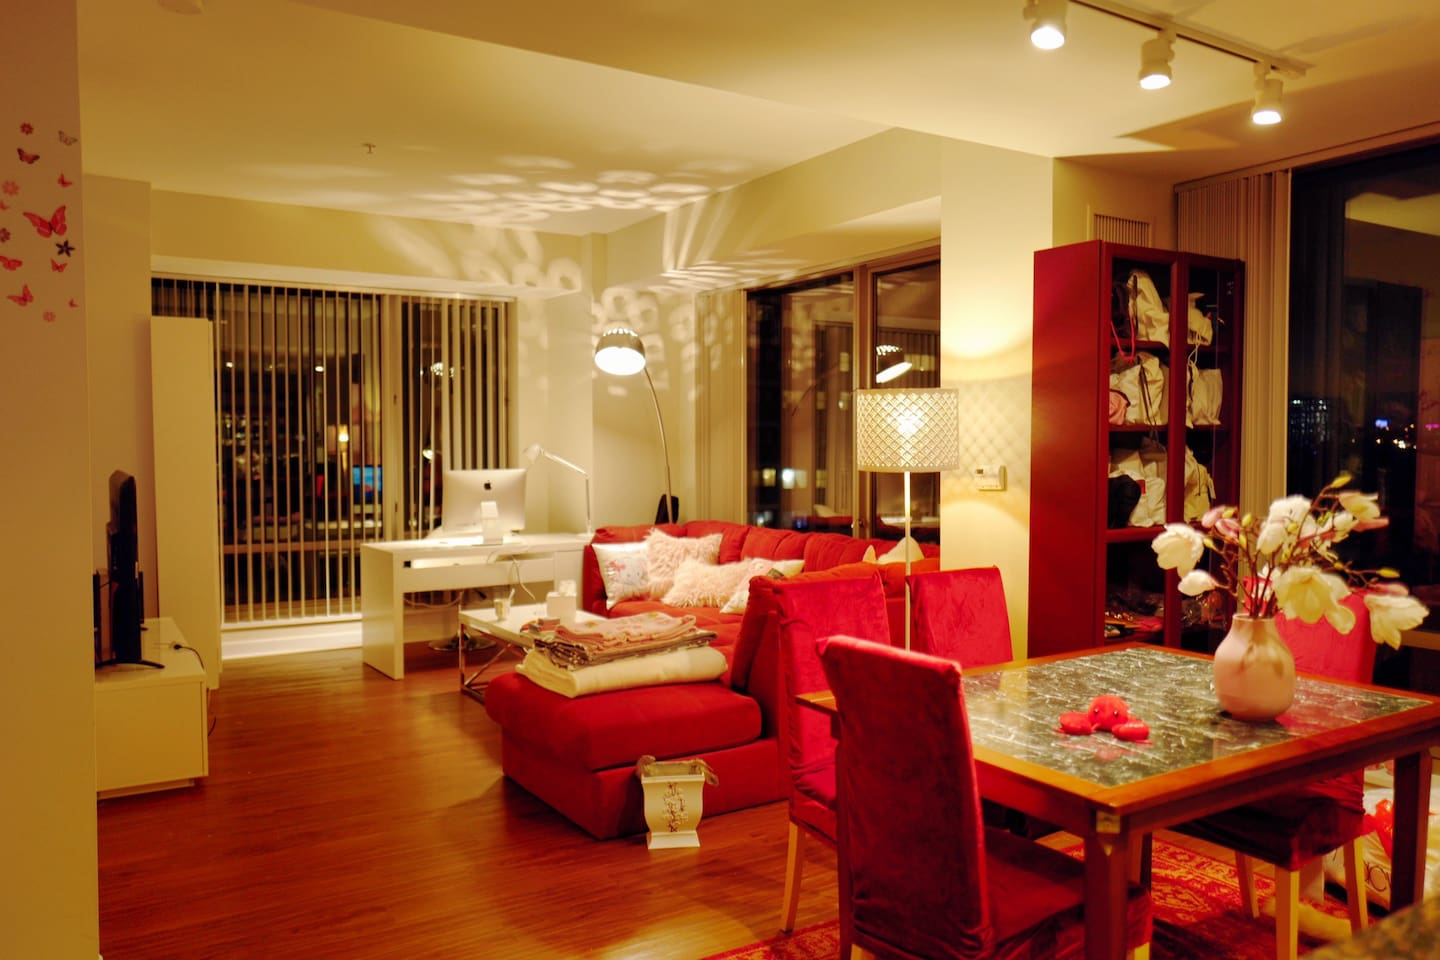 The bright and spacious home with the chic living room and the dining area. How lovely it is!